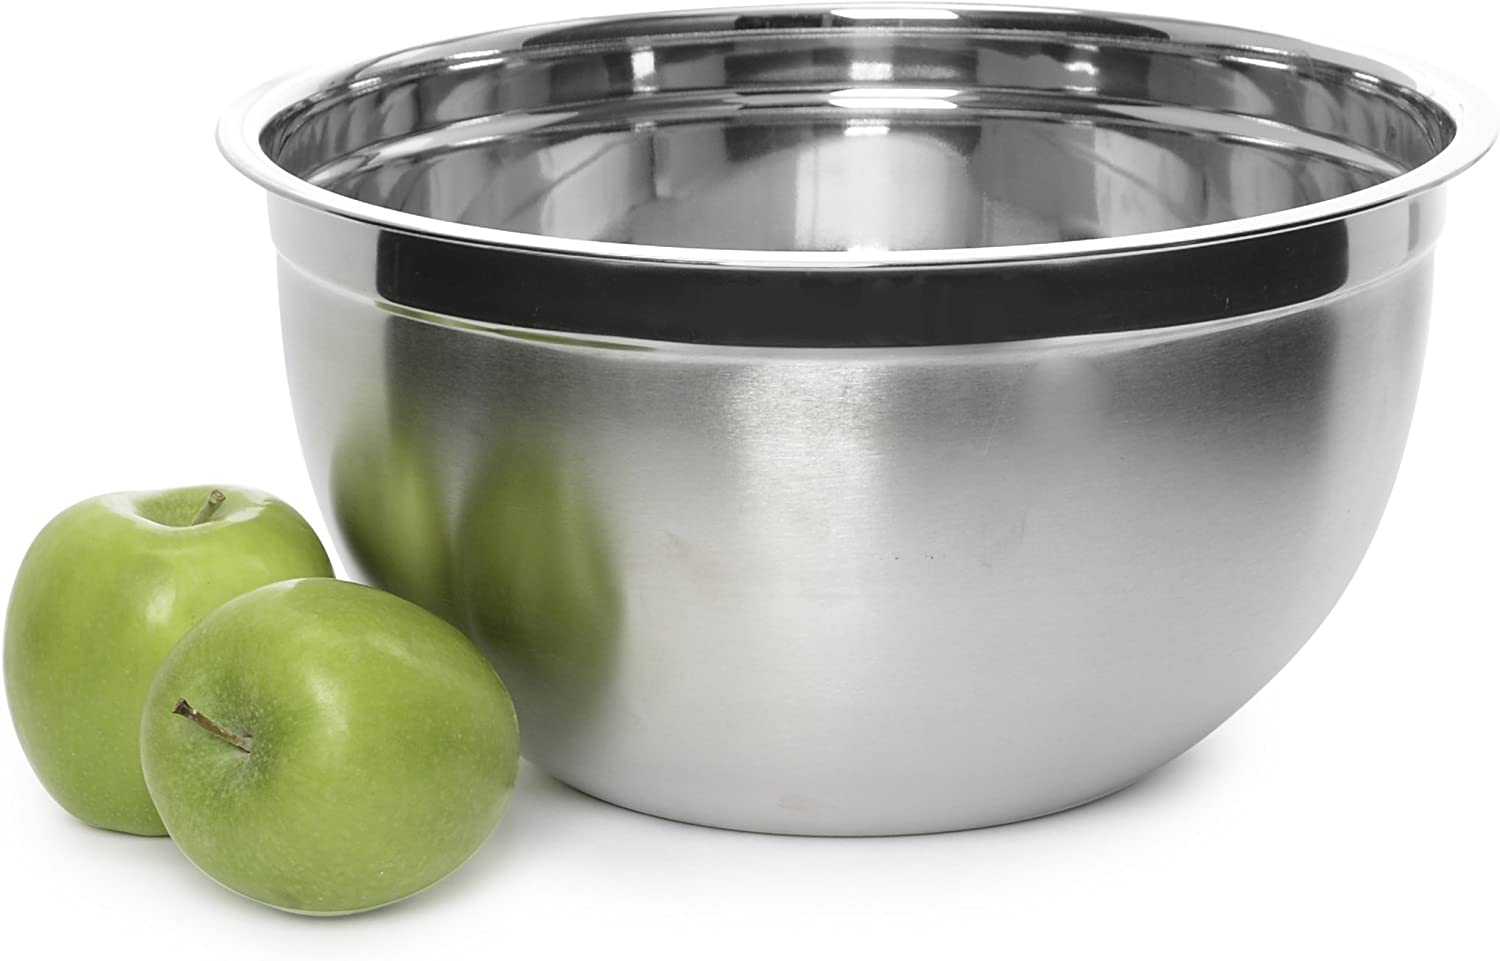 Stainless Steel Mixing Bowl - Premium Polished Mirror Nesting Metal Bowl for Cooking and Serving, Stackable for Convenient Storage (1, 10 Quart)